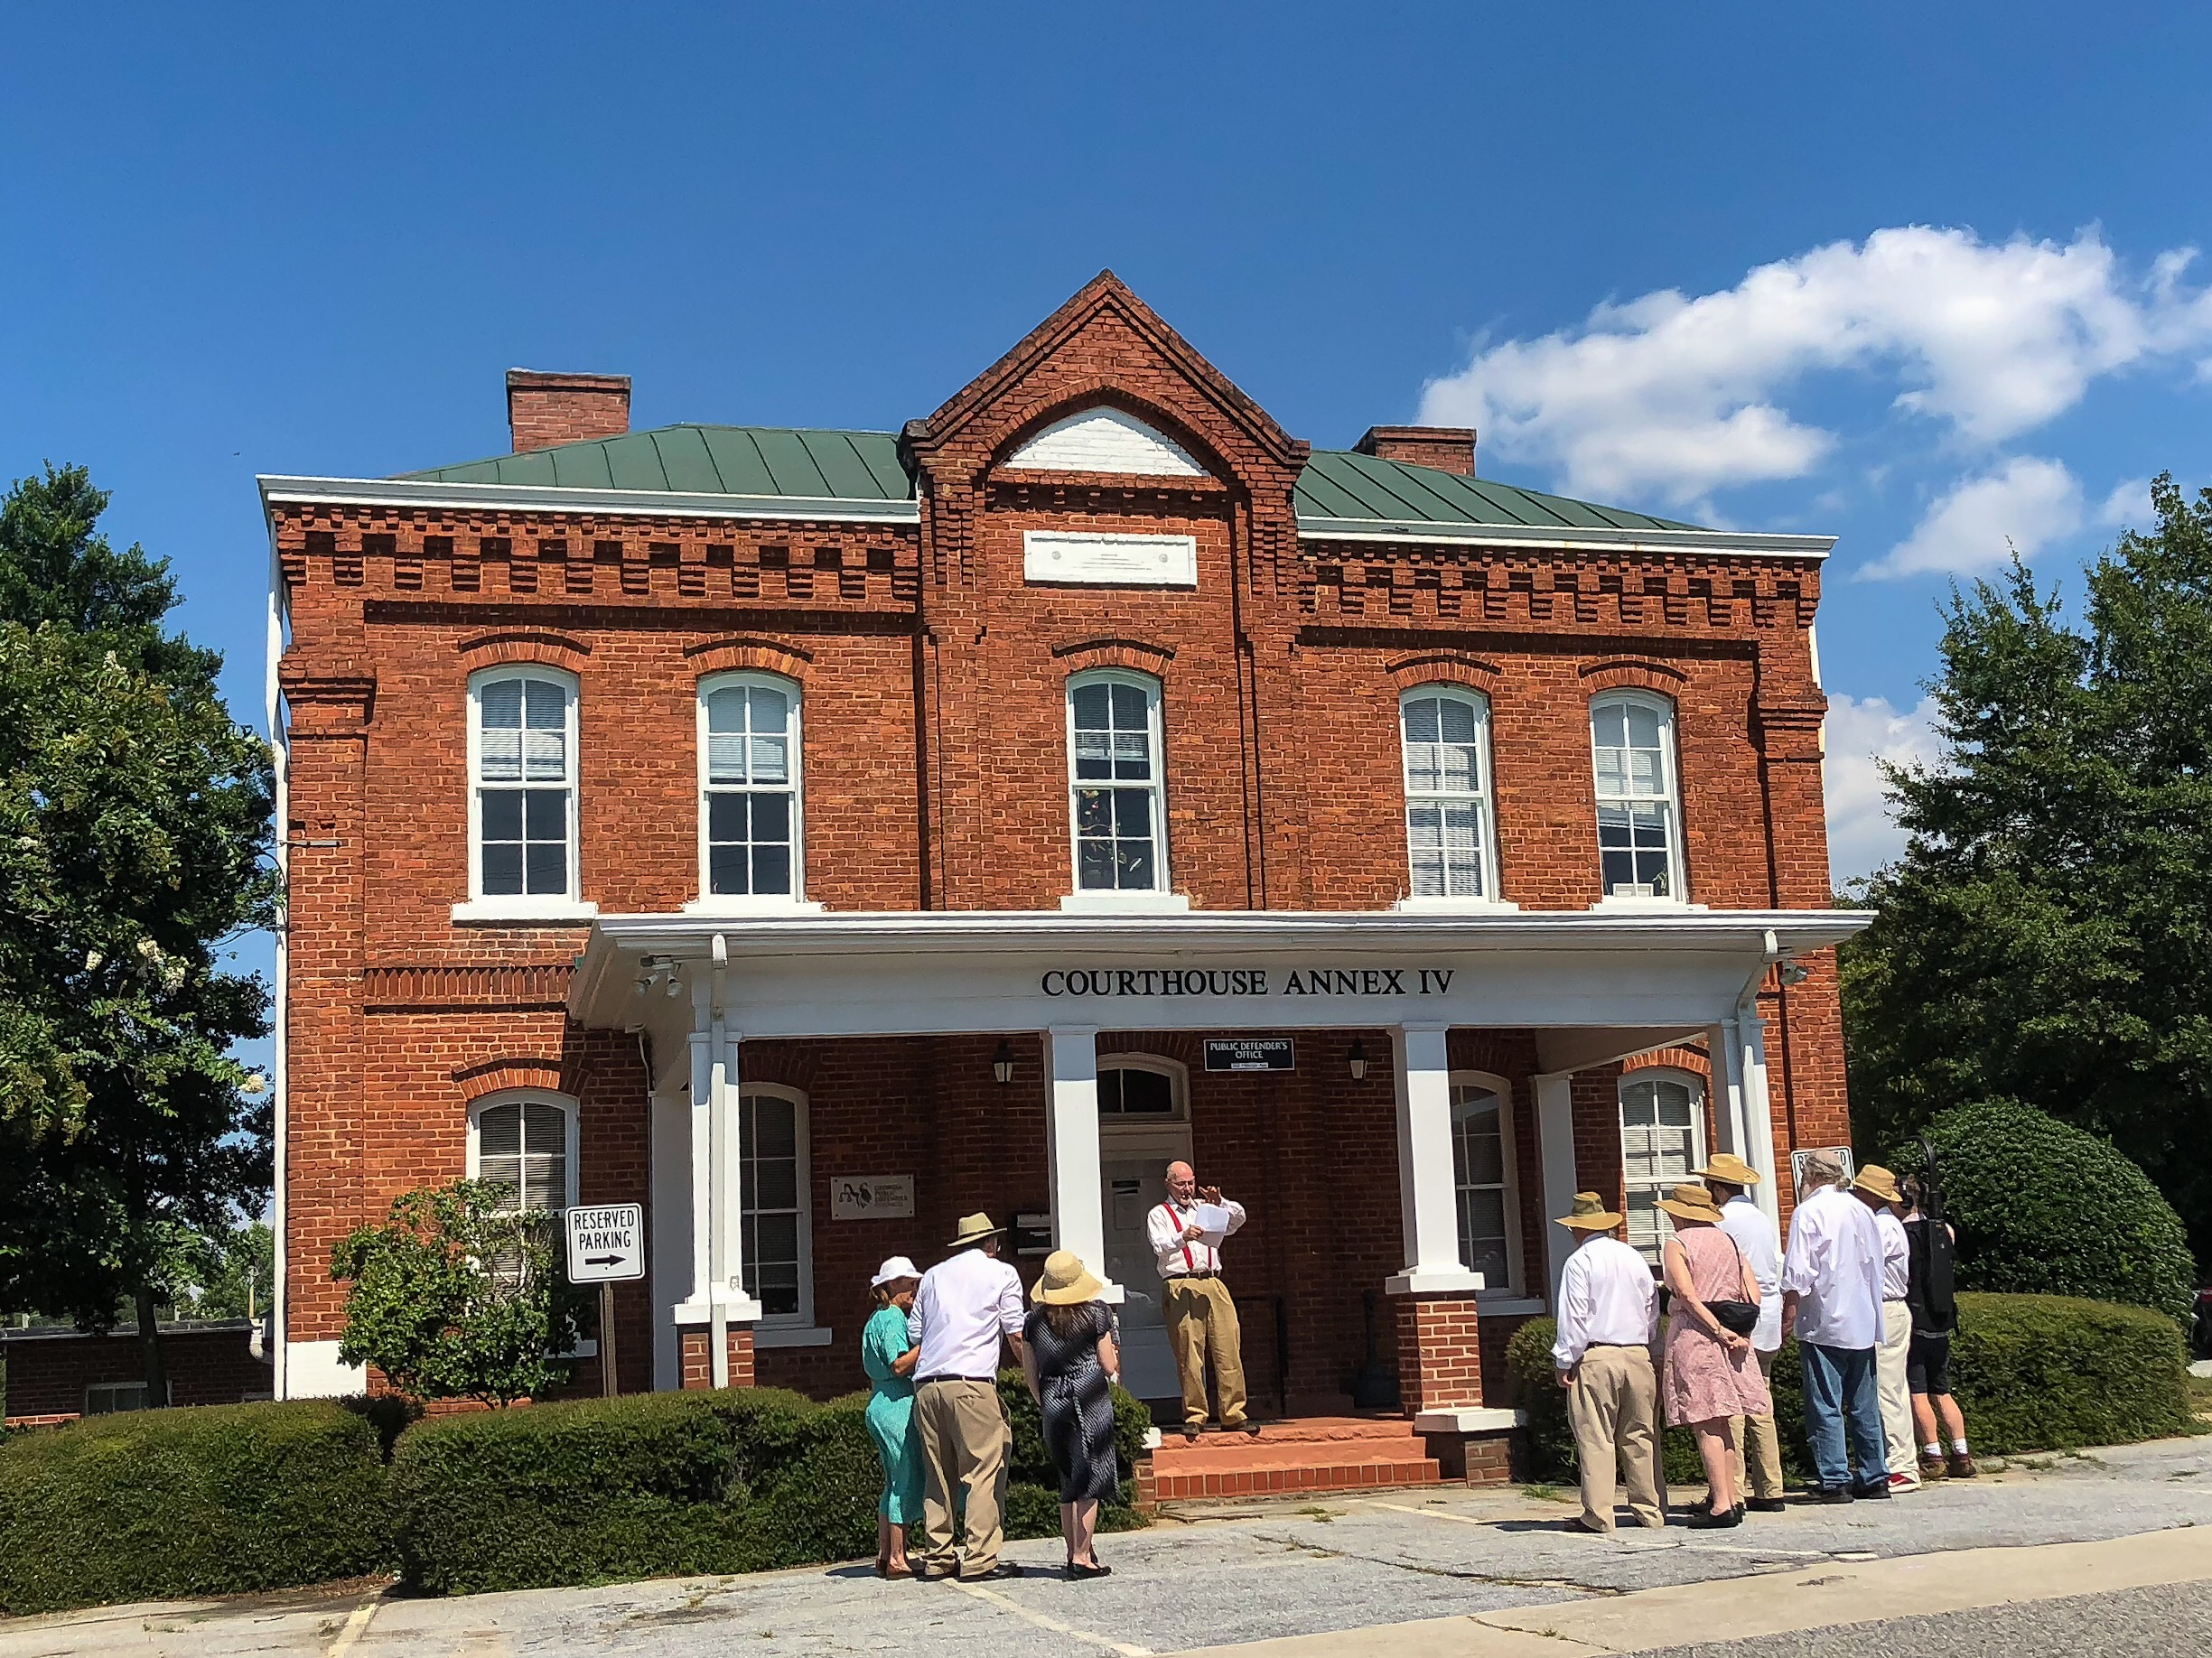 Attendees of the Moore's Ford Re-enactment gather outside the building that was the original jail in Monroe, GA. This jail is the location where Roger Malcom was held and released to Loy Harrison prior to meeting his death at the Moore's Ford Bridge.